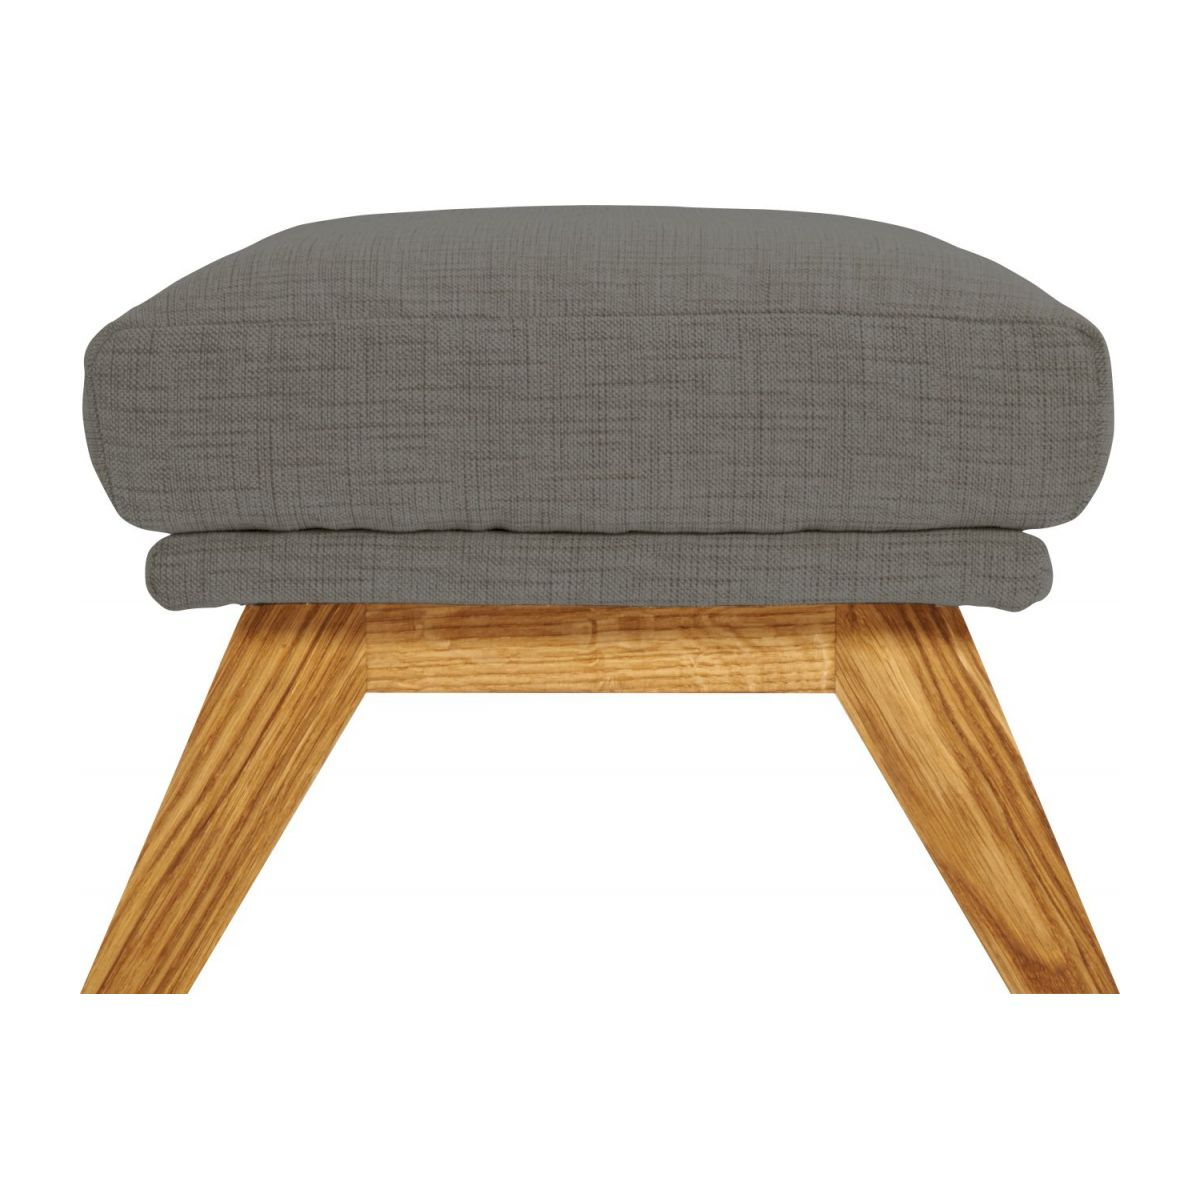 Footstool in Ancio fabric, river rock with oak legs n°5